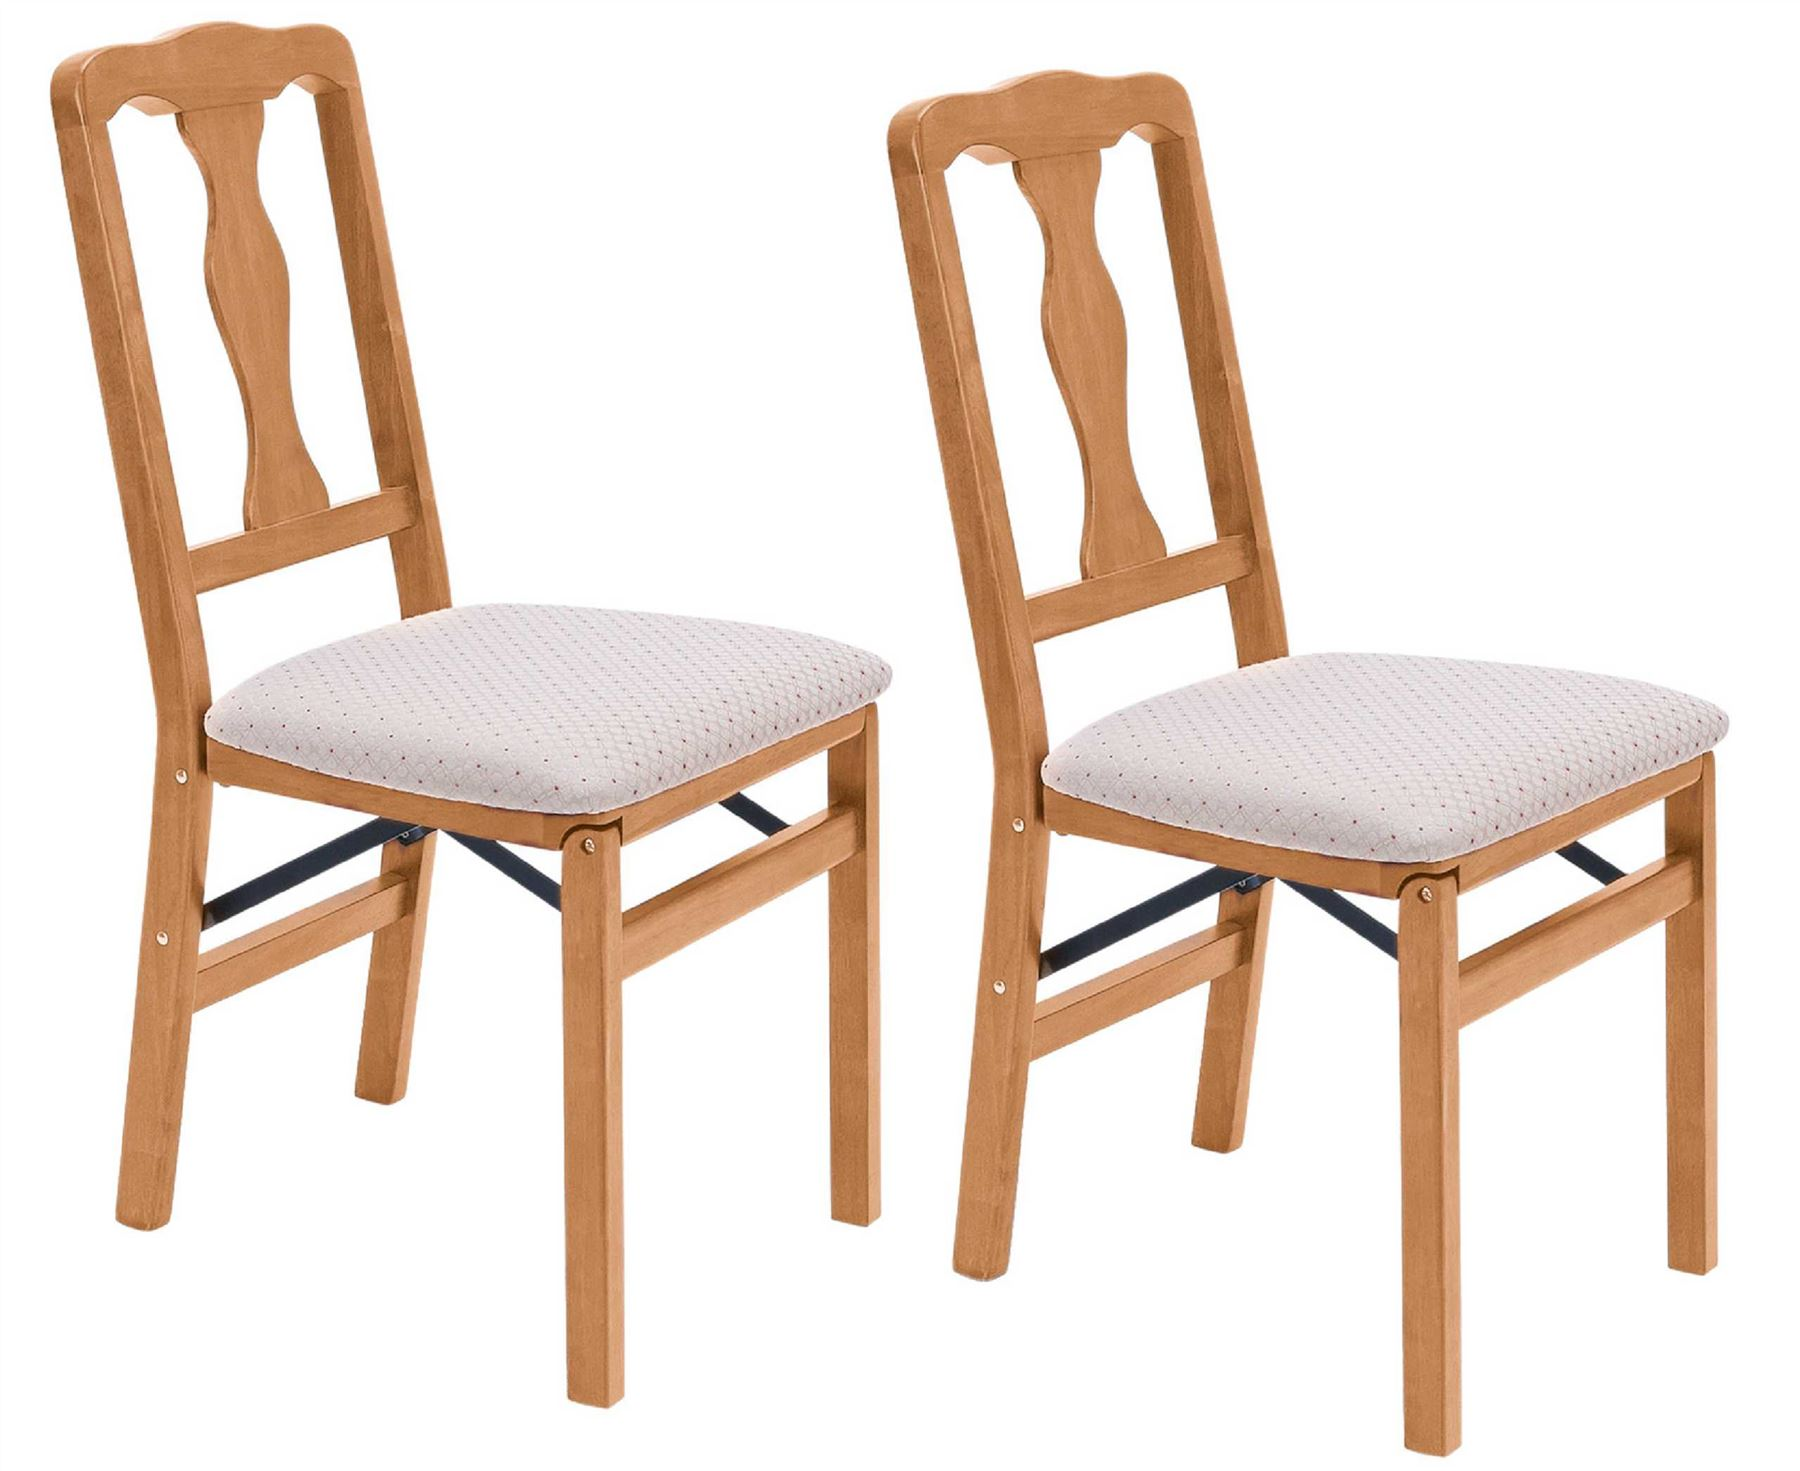 dining room folding chairs | Queen Anne Folding Dining Chairs 2pcs Solid Hardwood Frame ...